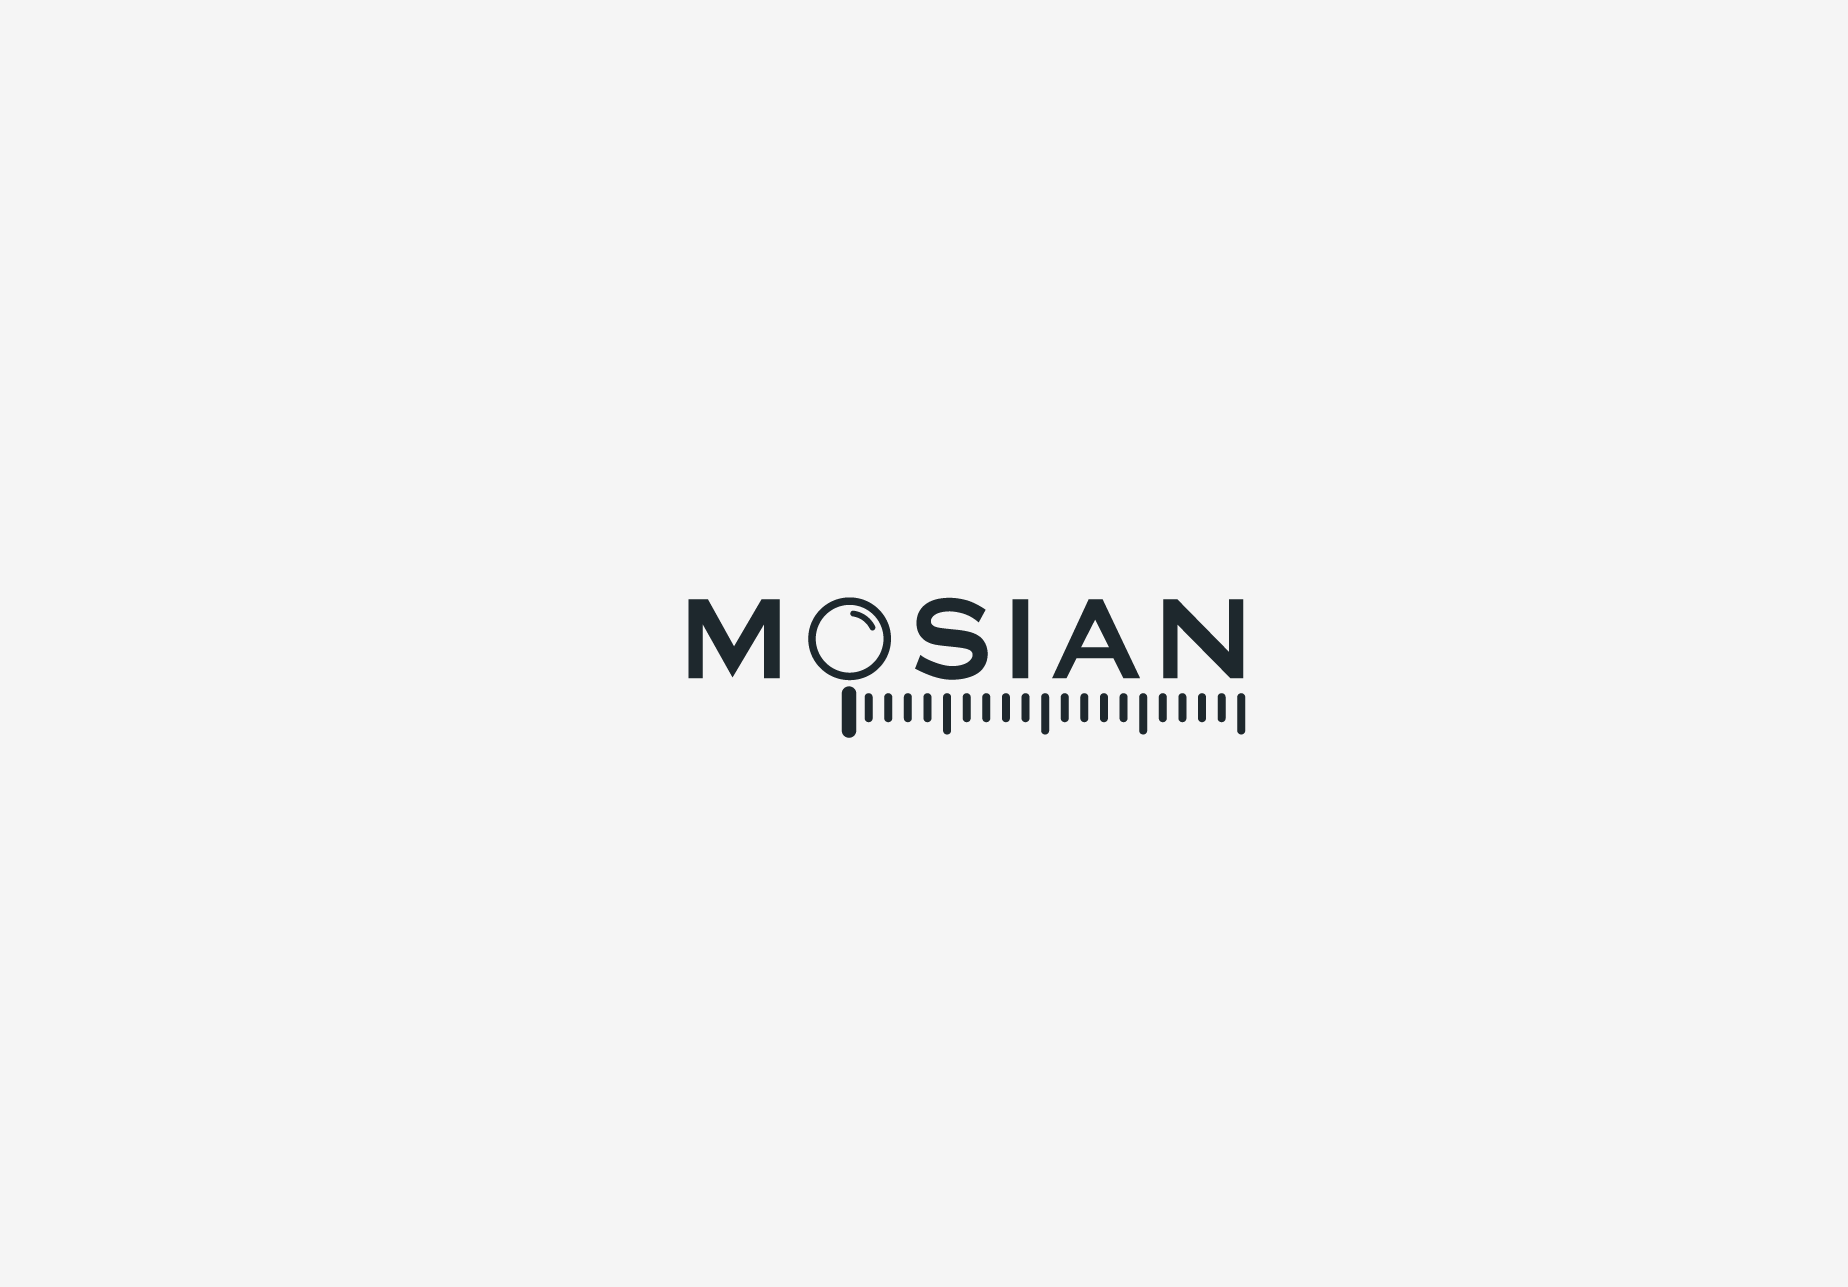 Create a compelling logo for Mosian